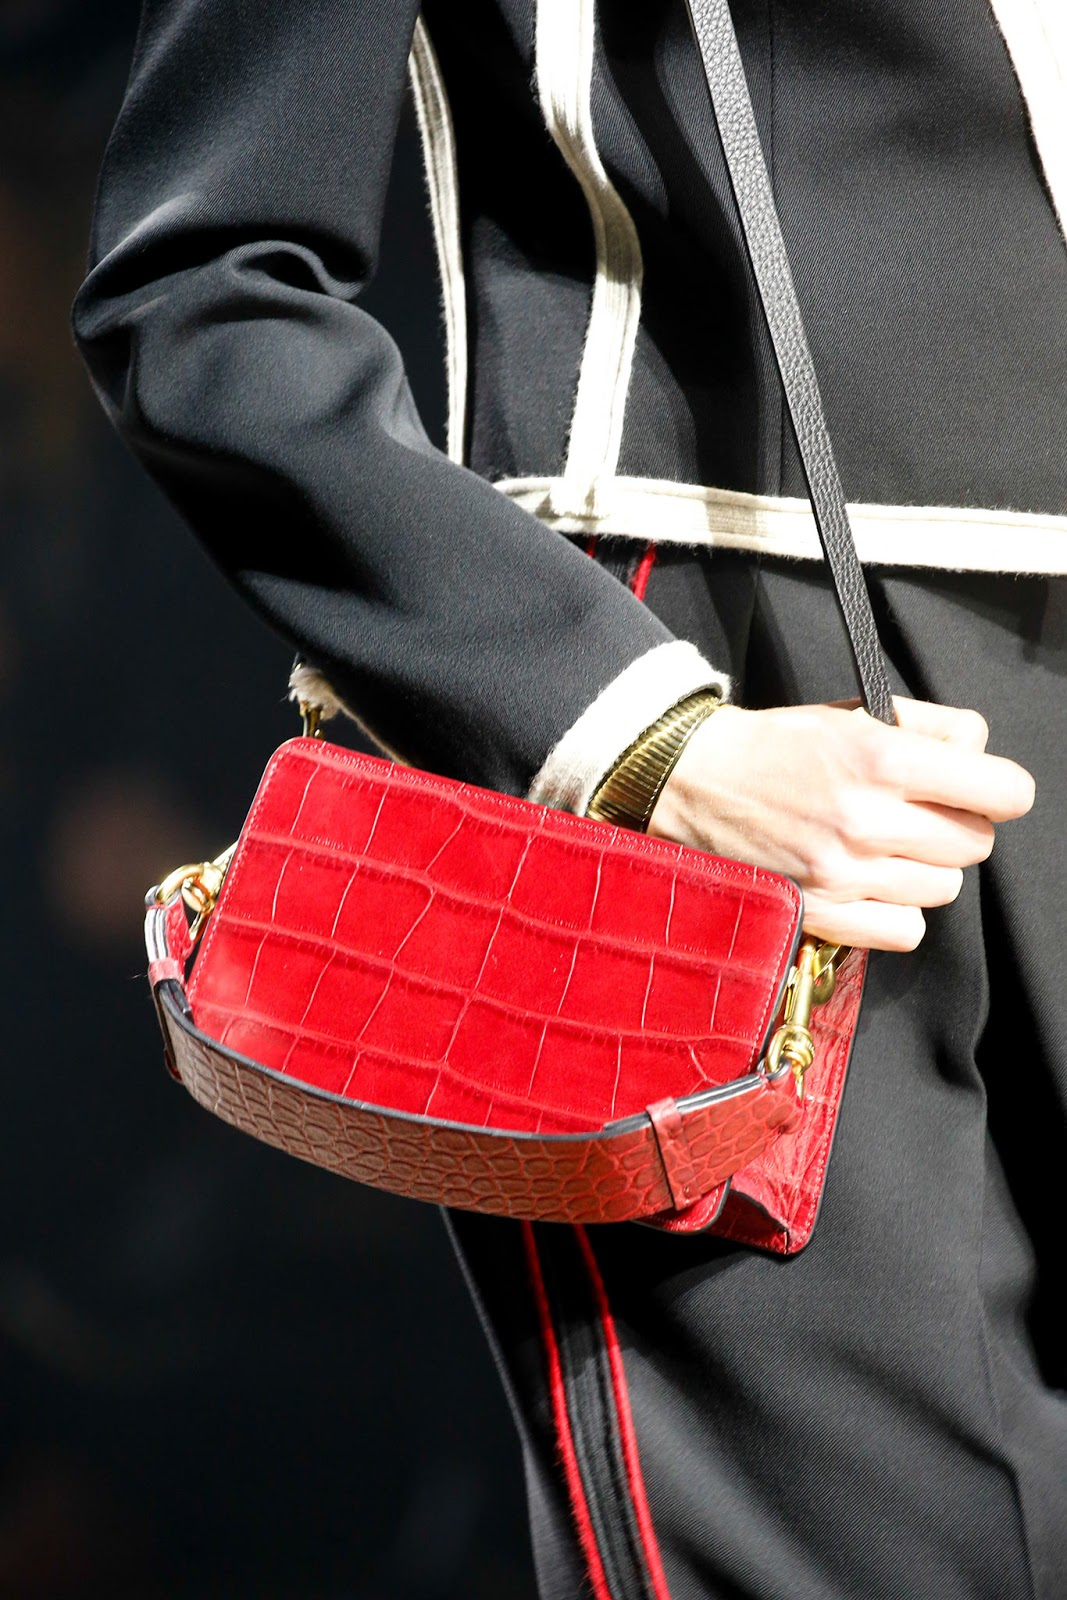 Fall 2015 accessories trend report / best bags / investment bags / crocodile accessories trend at Lanvin Fall/Winter 2015 via fashionedbylove.co.uk, british fashion blog